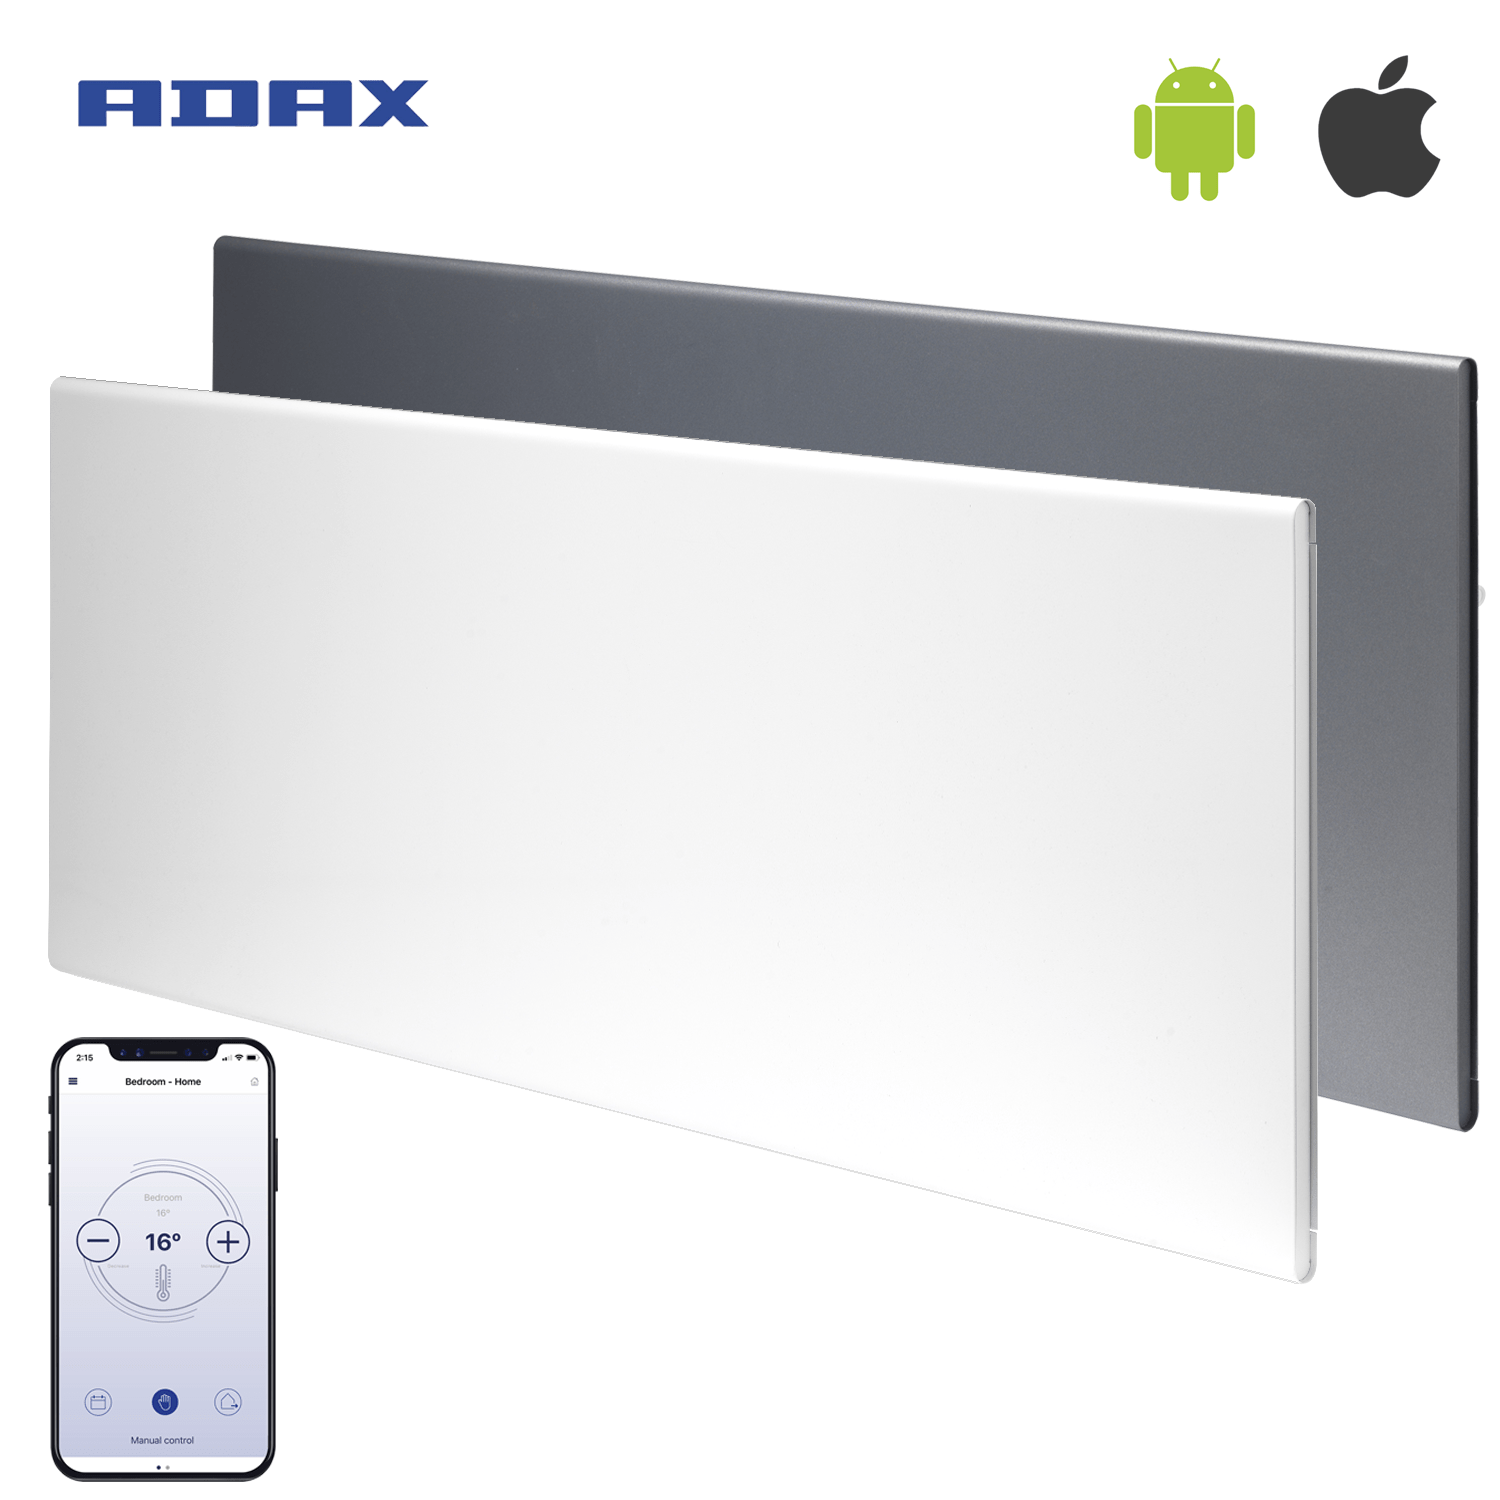 ADAX NEO WiFi Electric Wall Heater Radiator